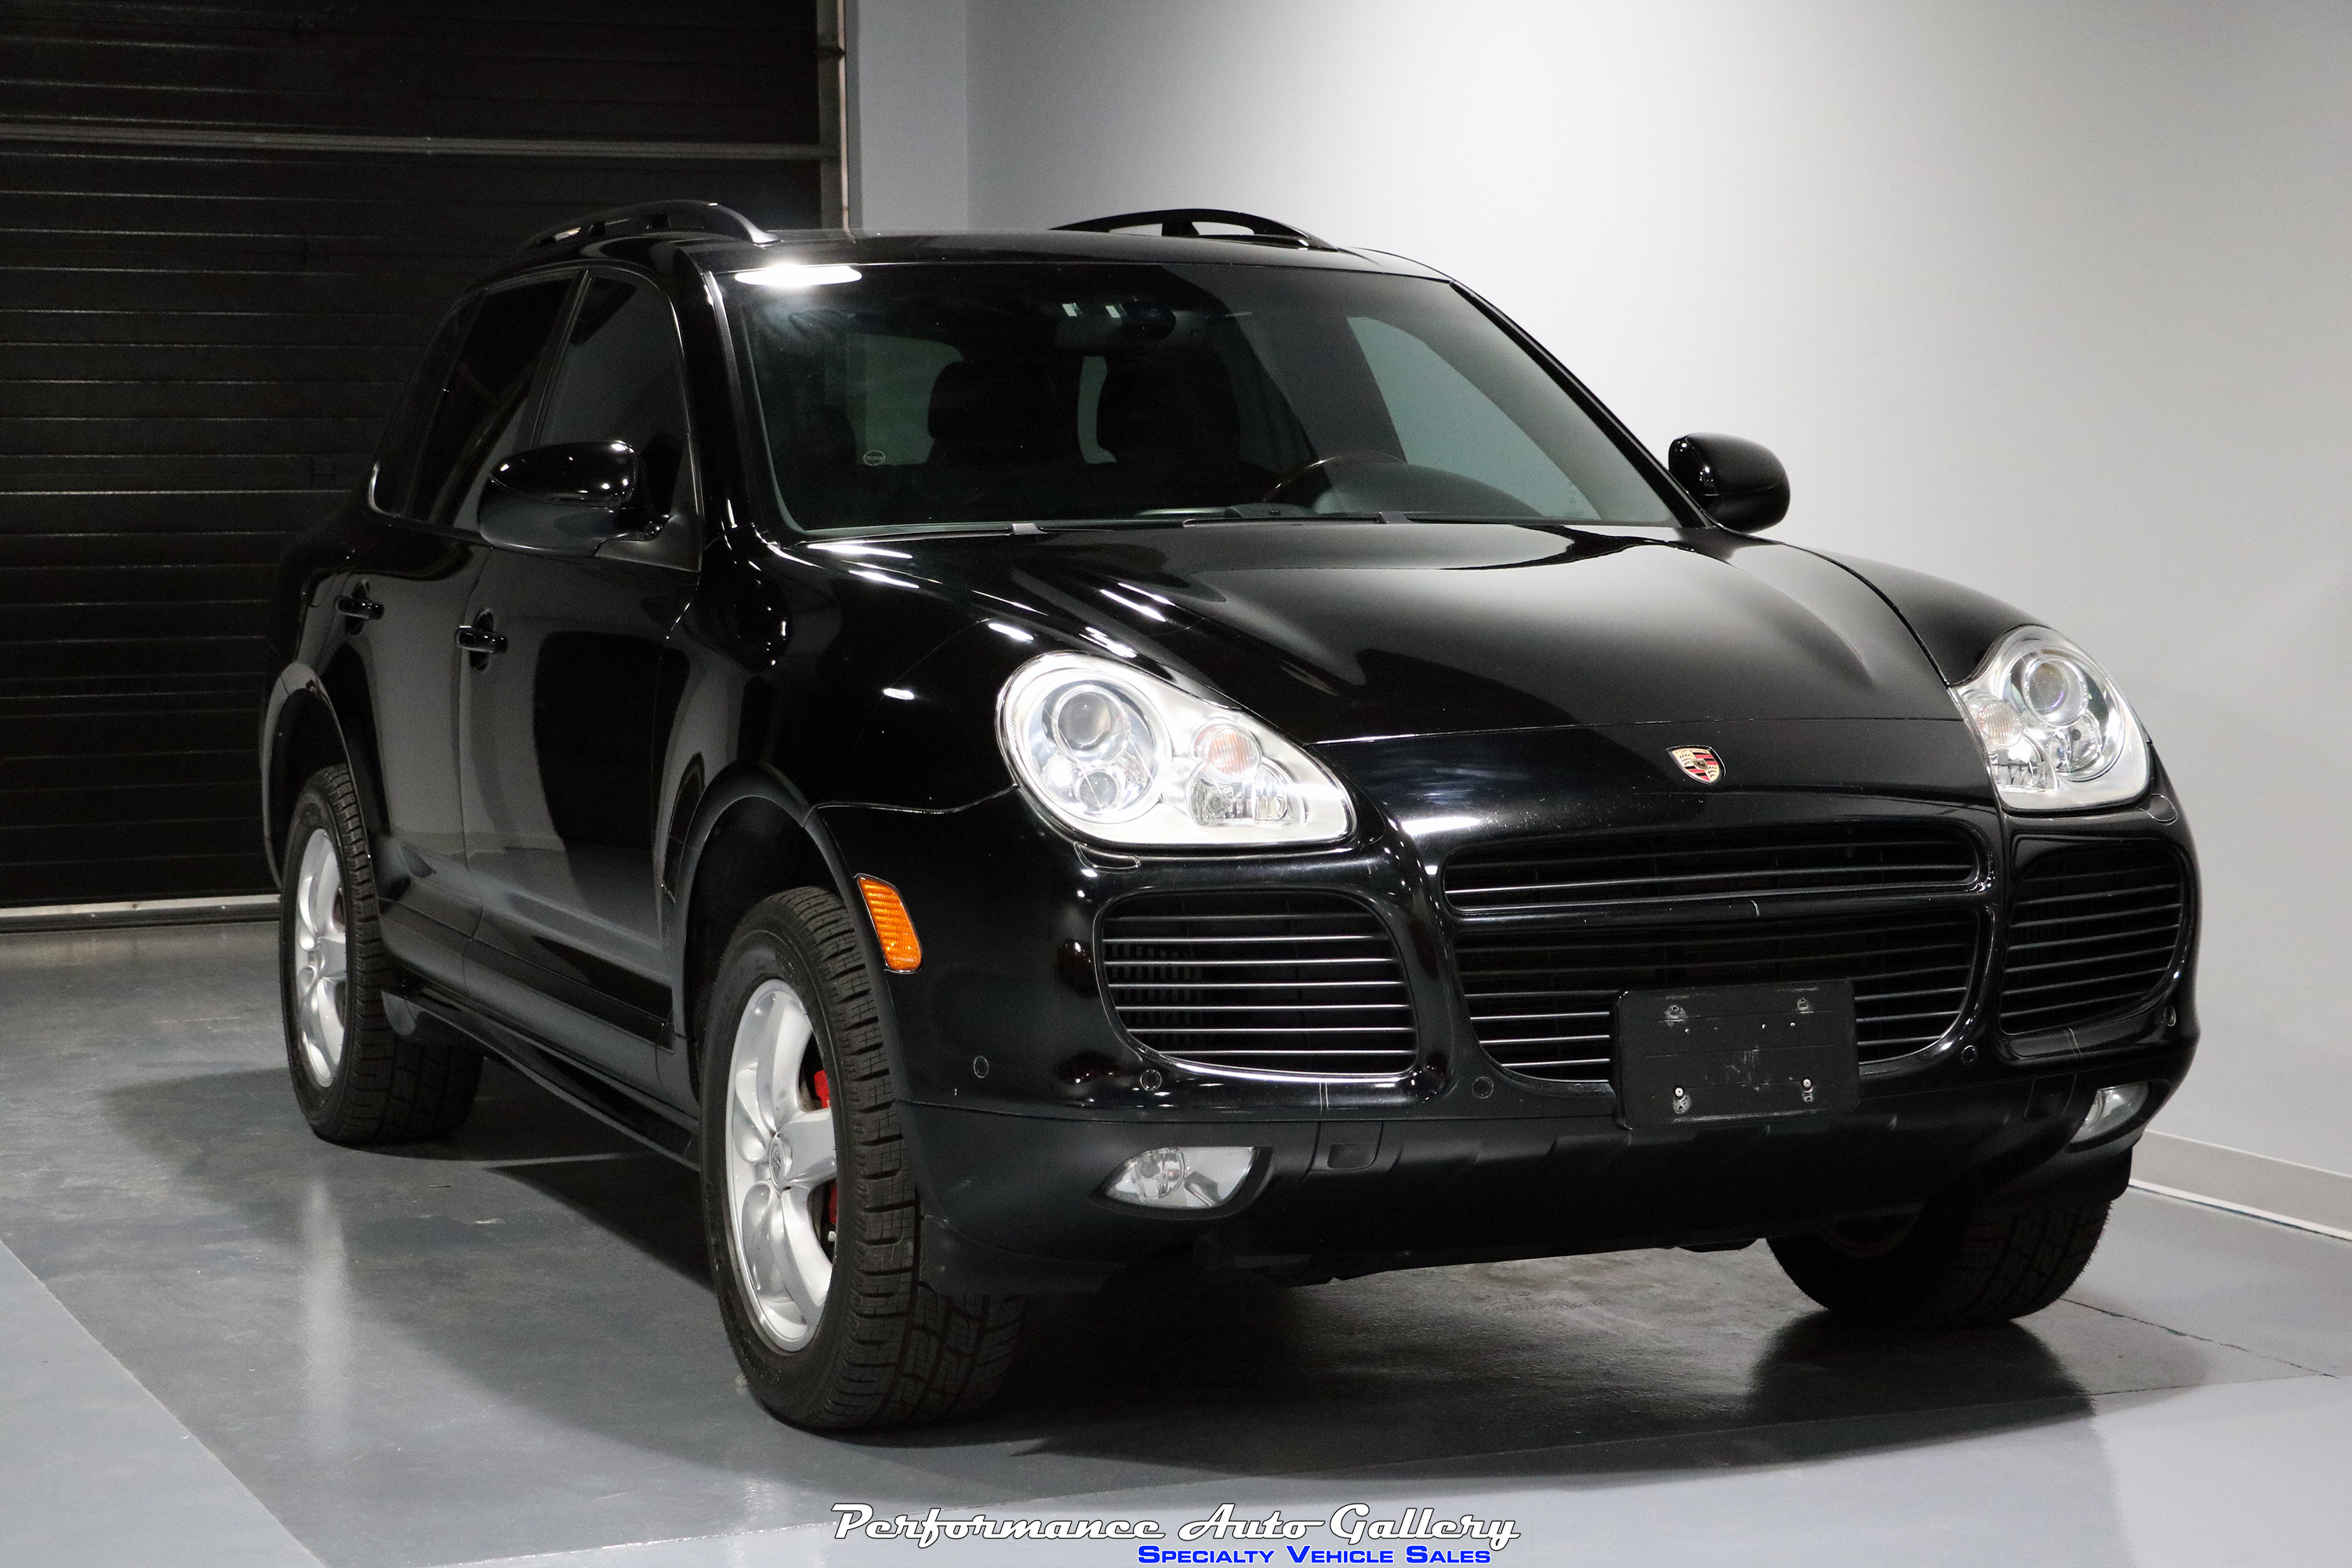 new arrival 2006 porsche cayenne turbo for sale. Black Bedroom Furniture Sets. Home Design Ideas